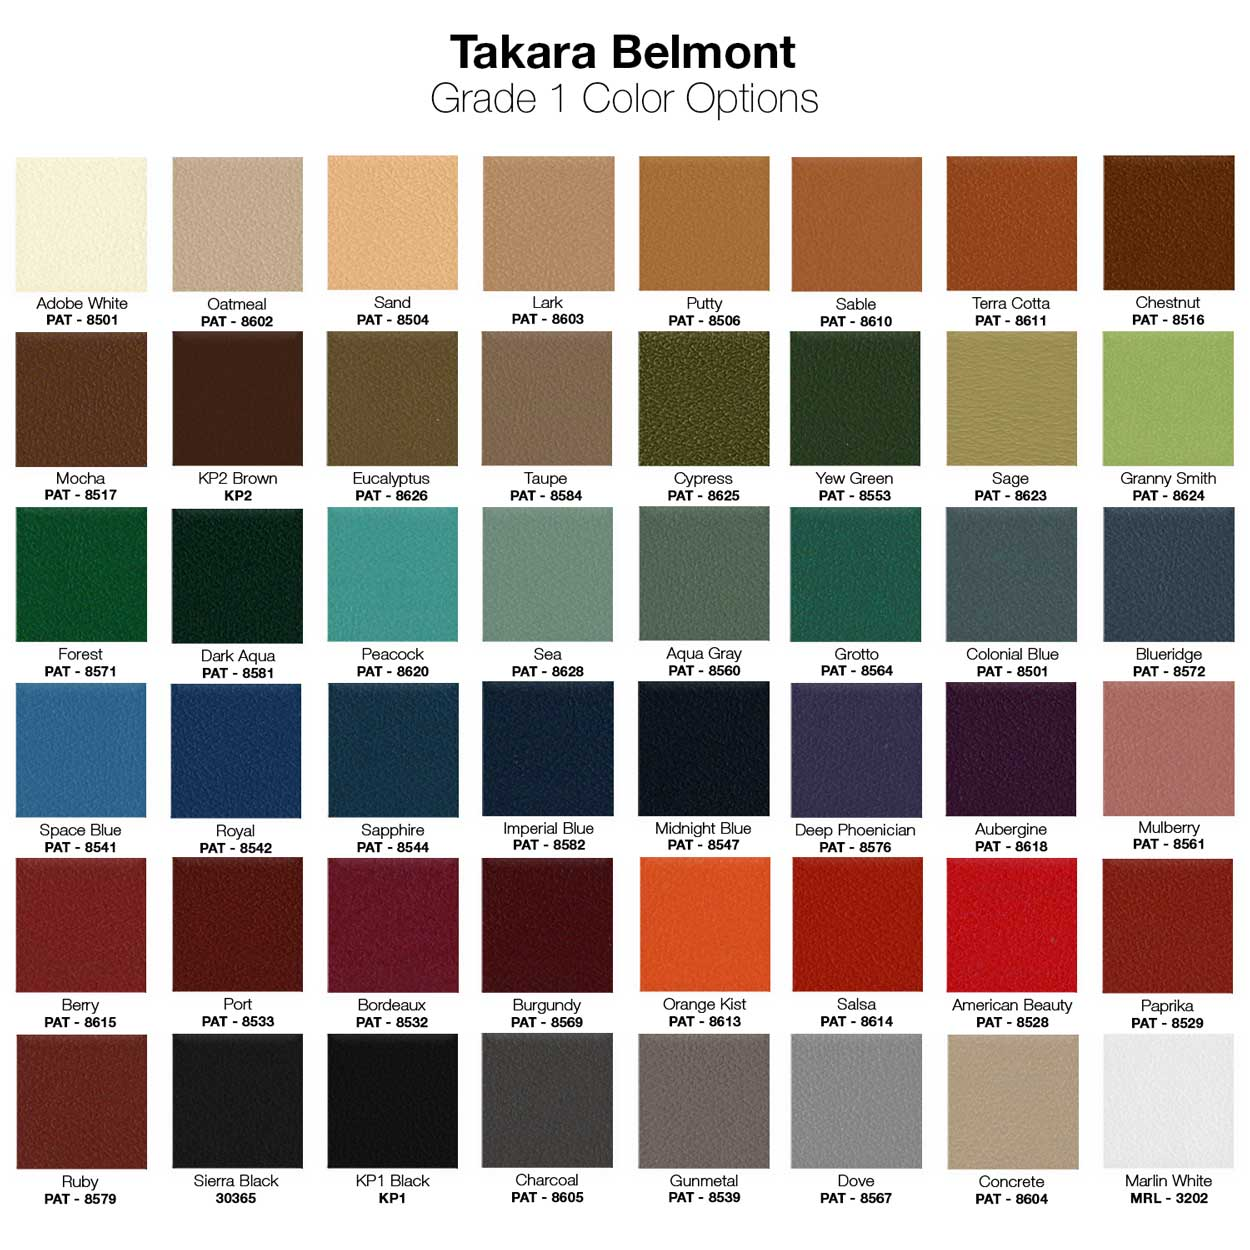 Takara Belmont Sara Styling Chair alternative product image 1